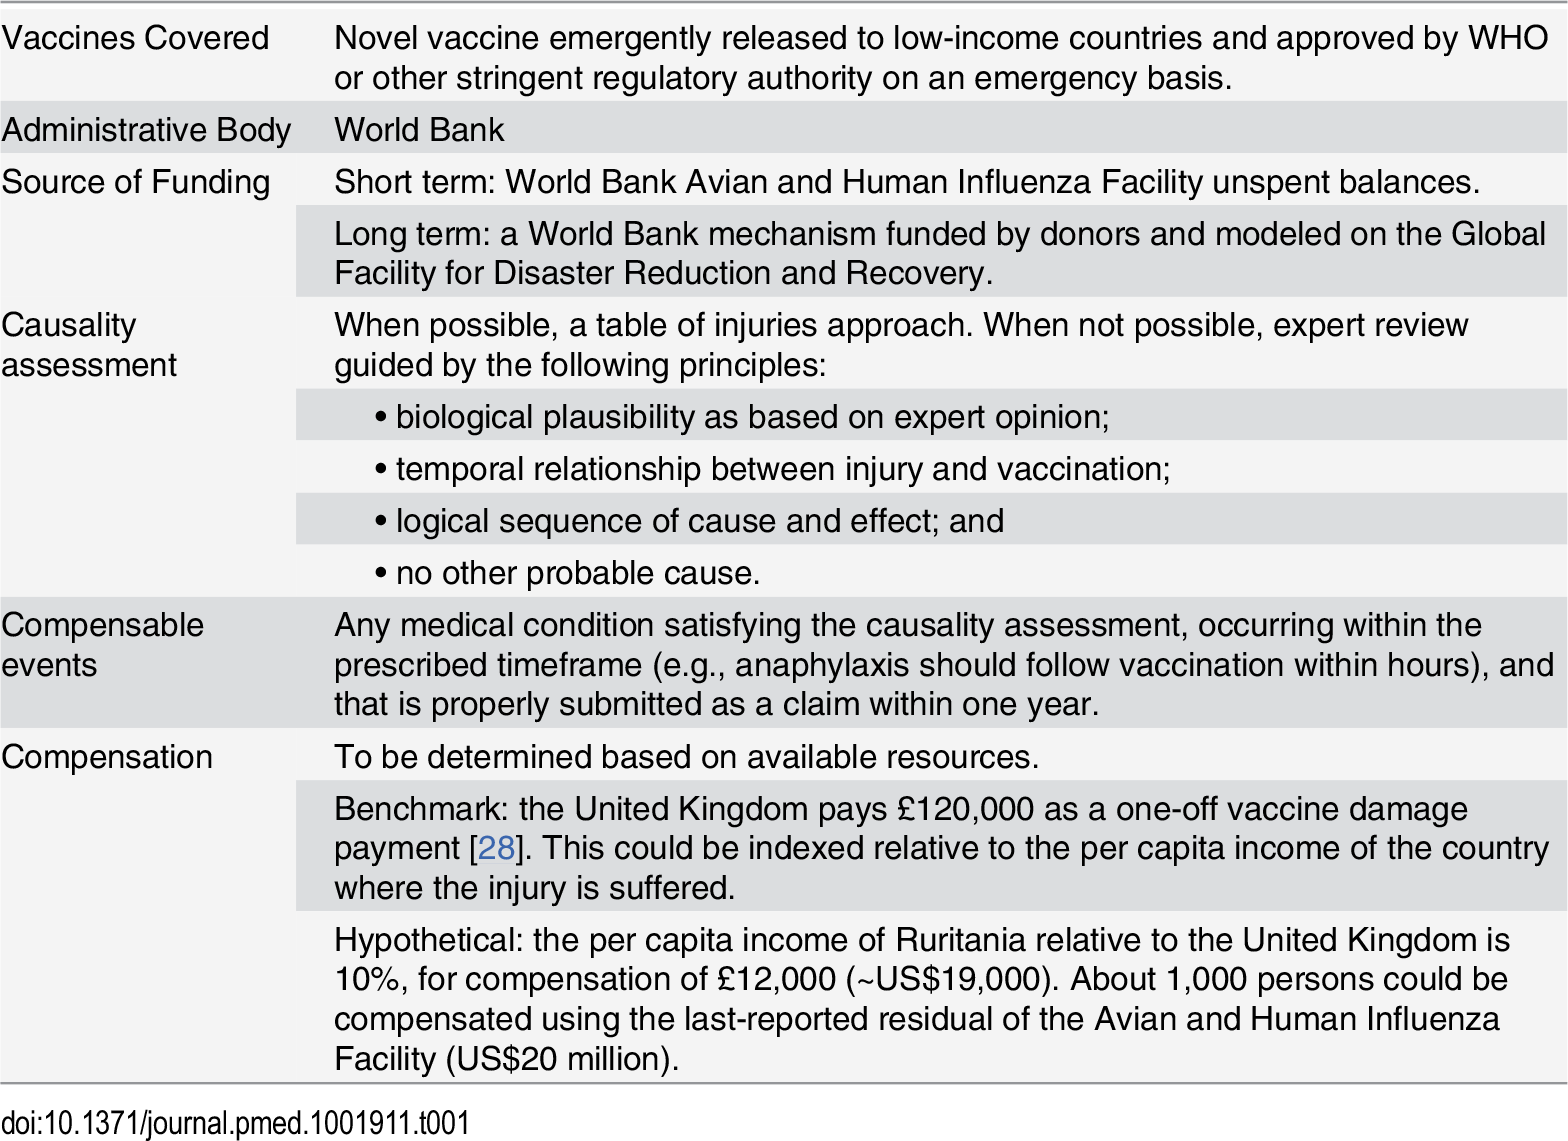 Components of a proposed international no-fault compensation program for vaccine injuries in developing countries.